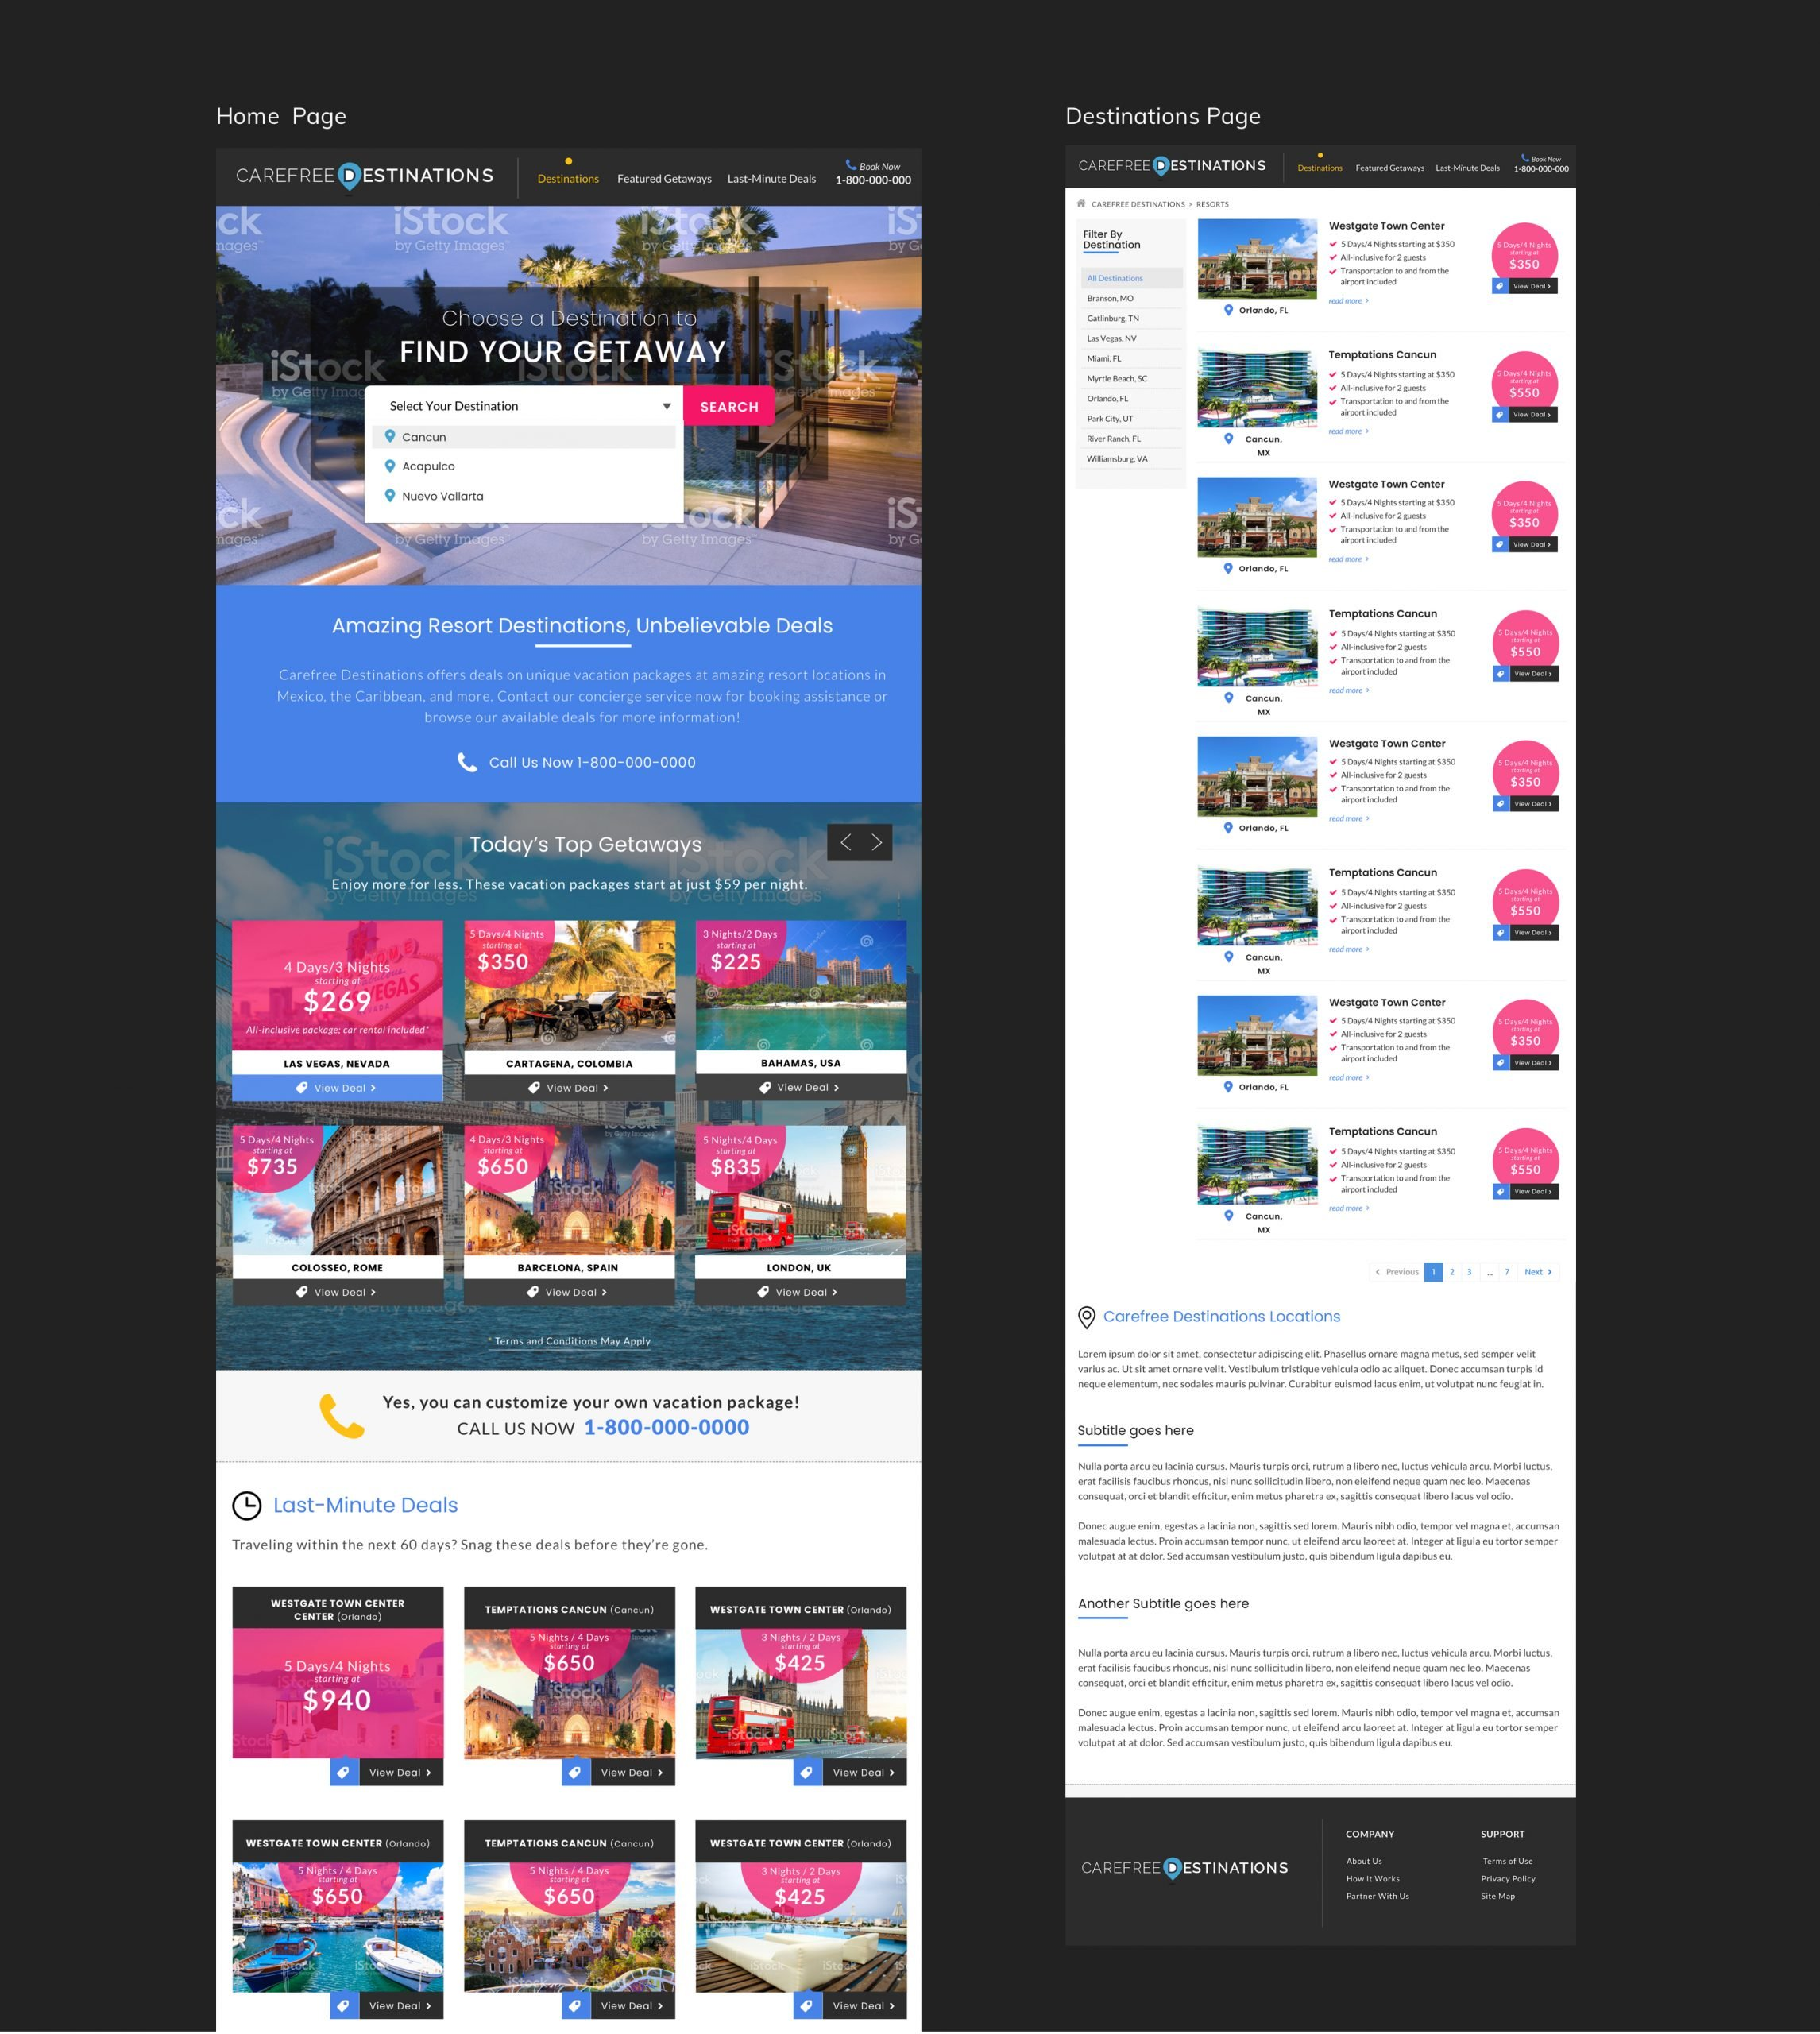 Carefree Destinations Home and Destinations Pages